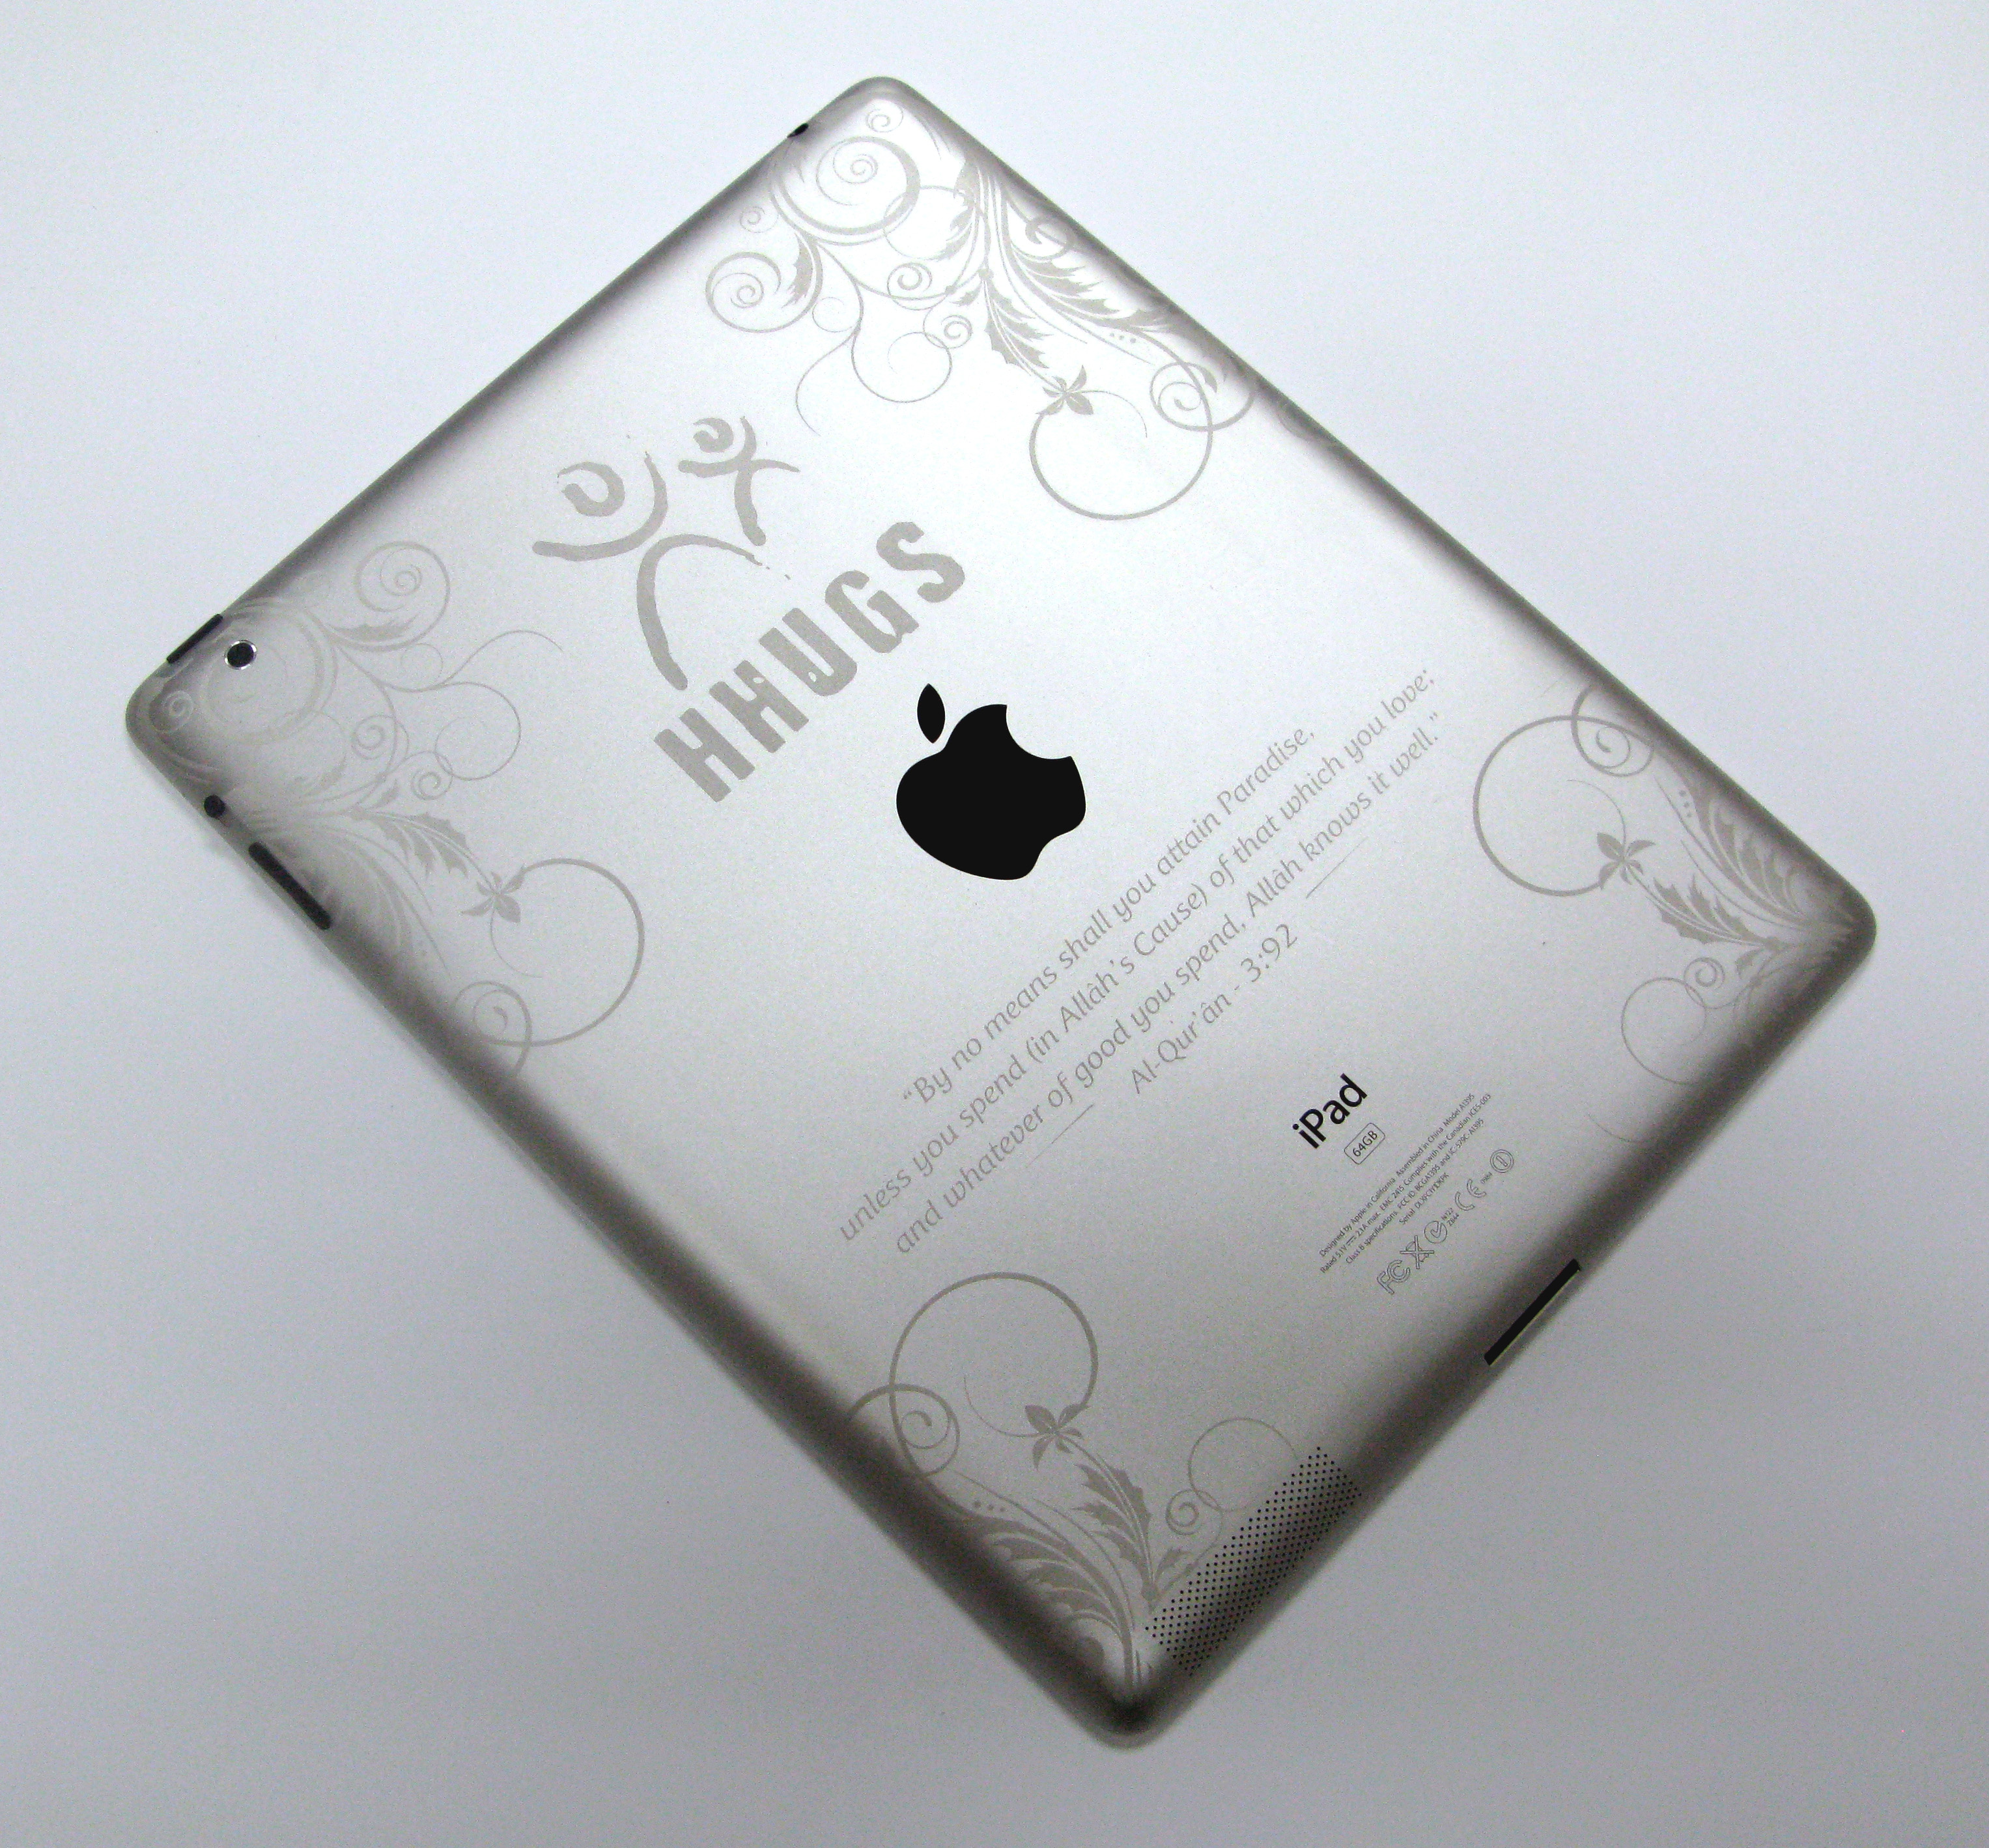 ipad2largeimage